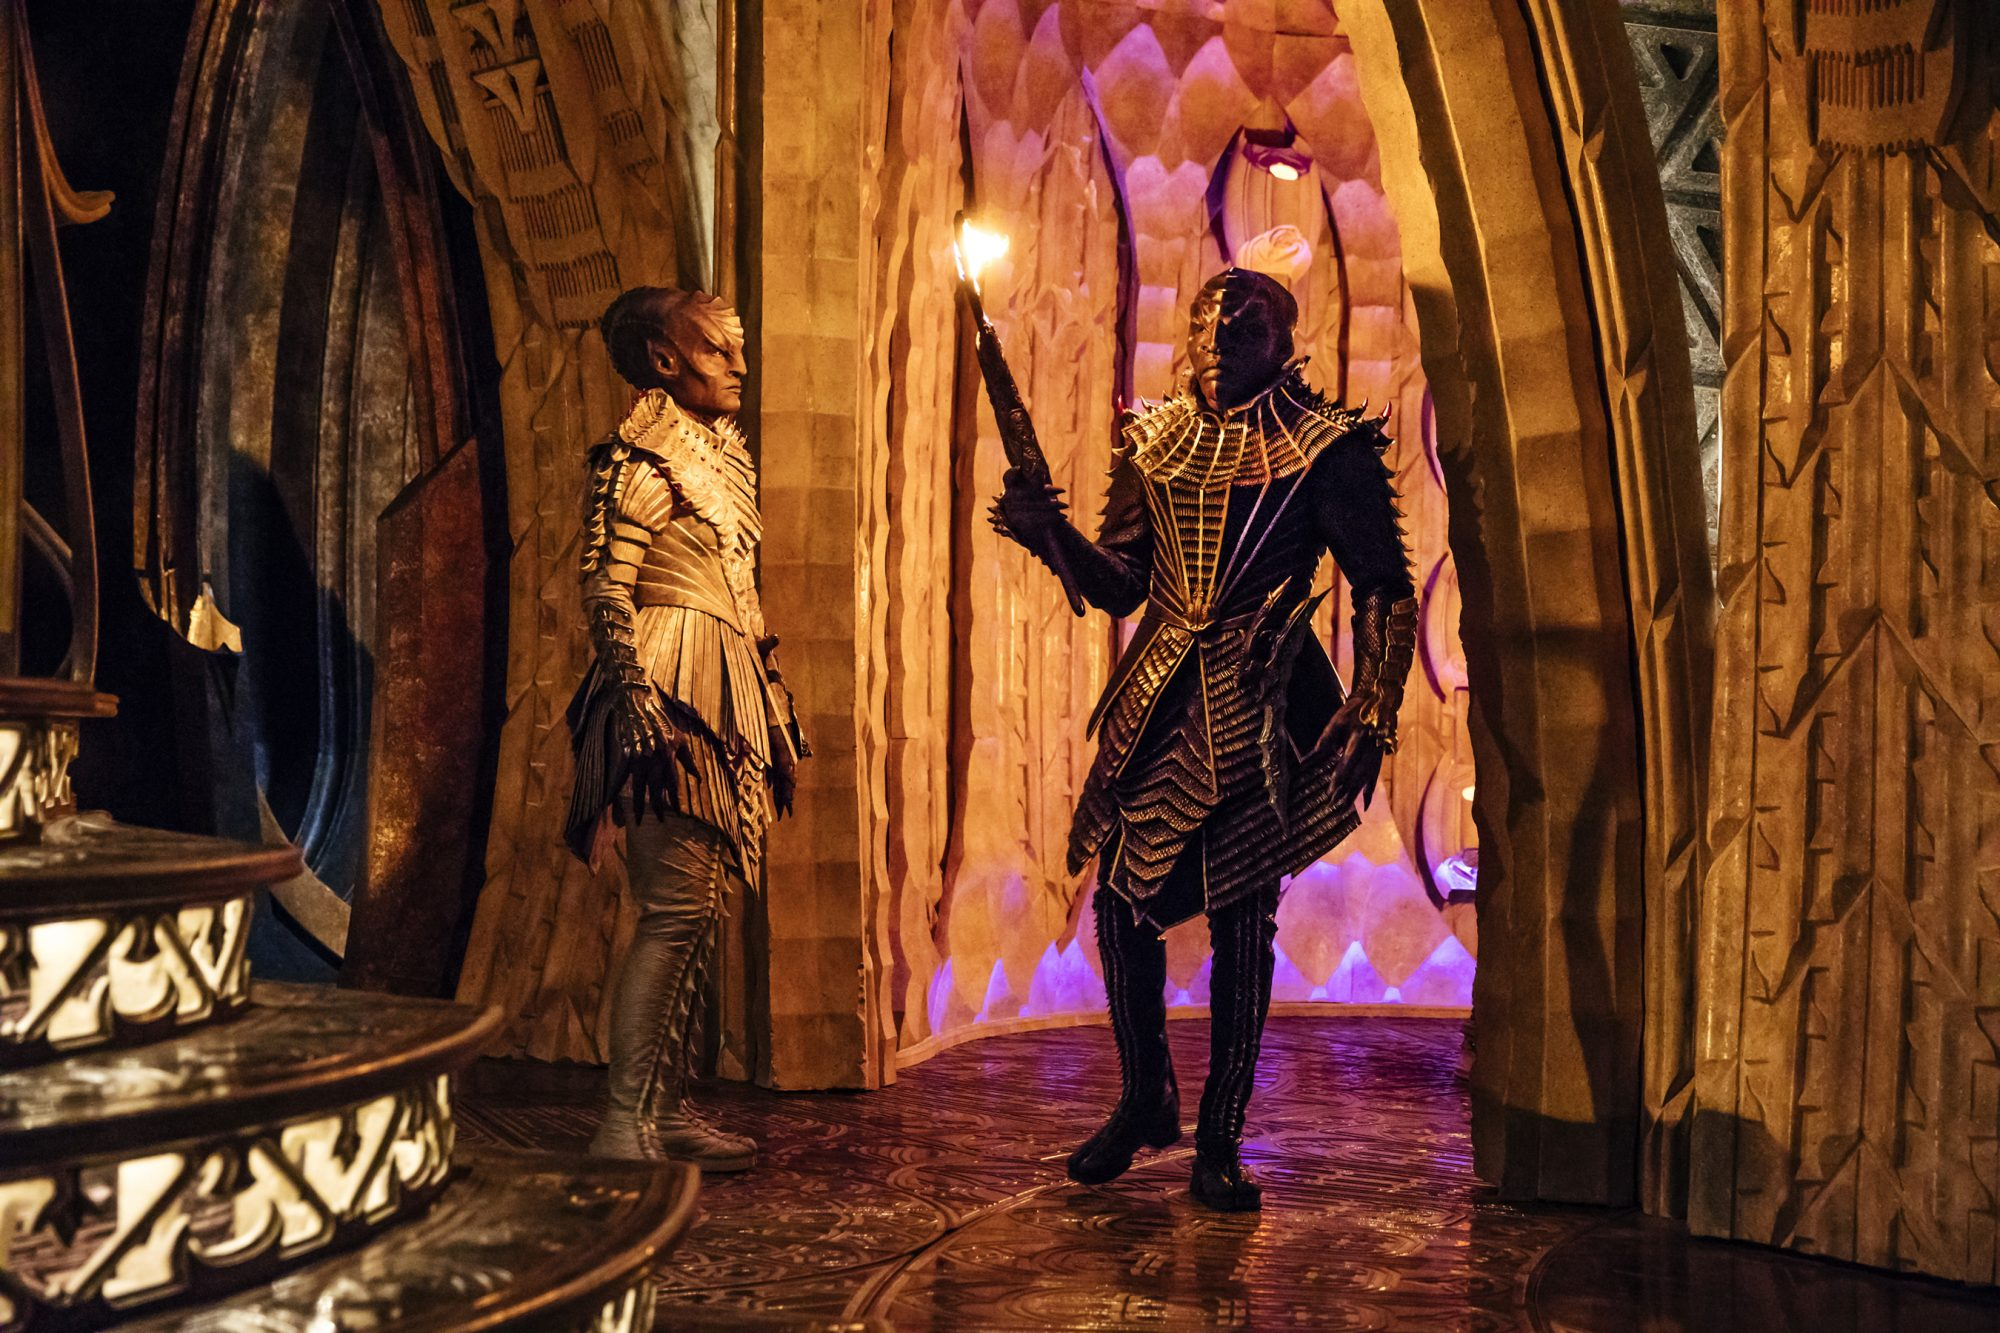 Mary Chieffo as L'Rell and Obi as T'Kuvma